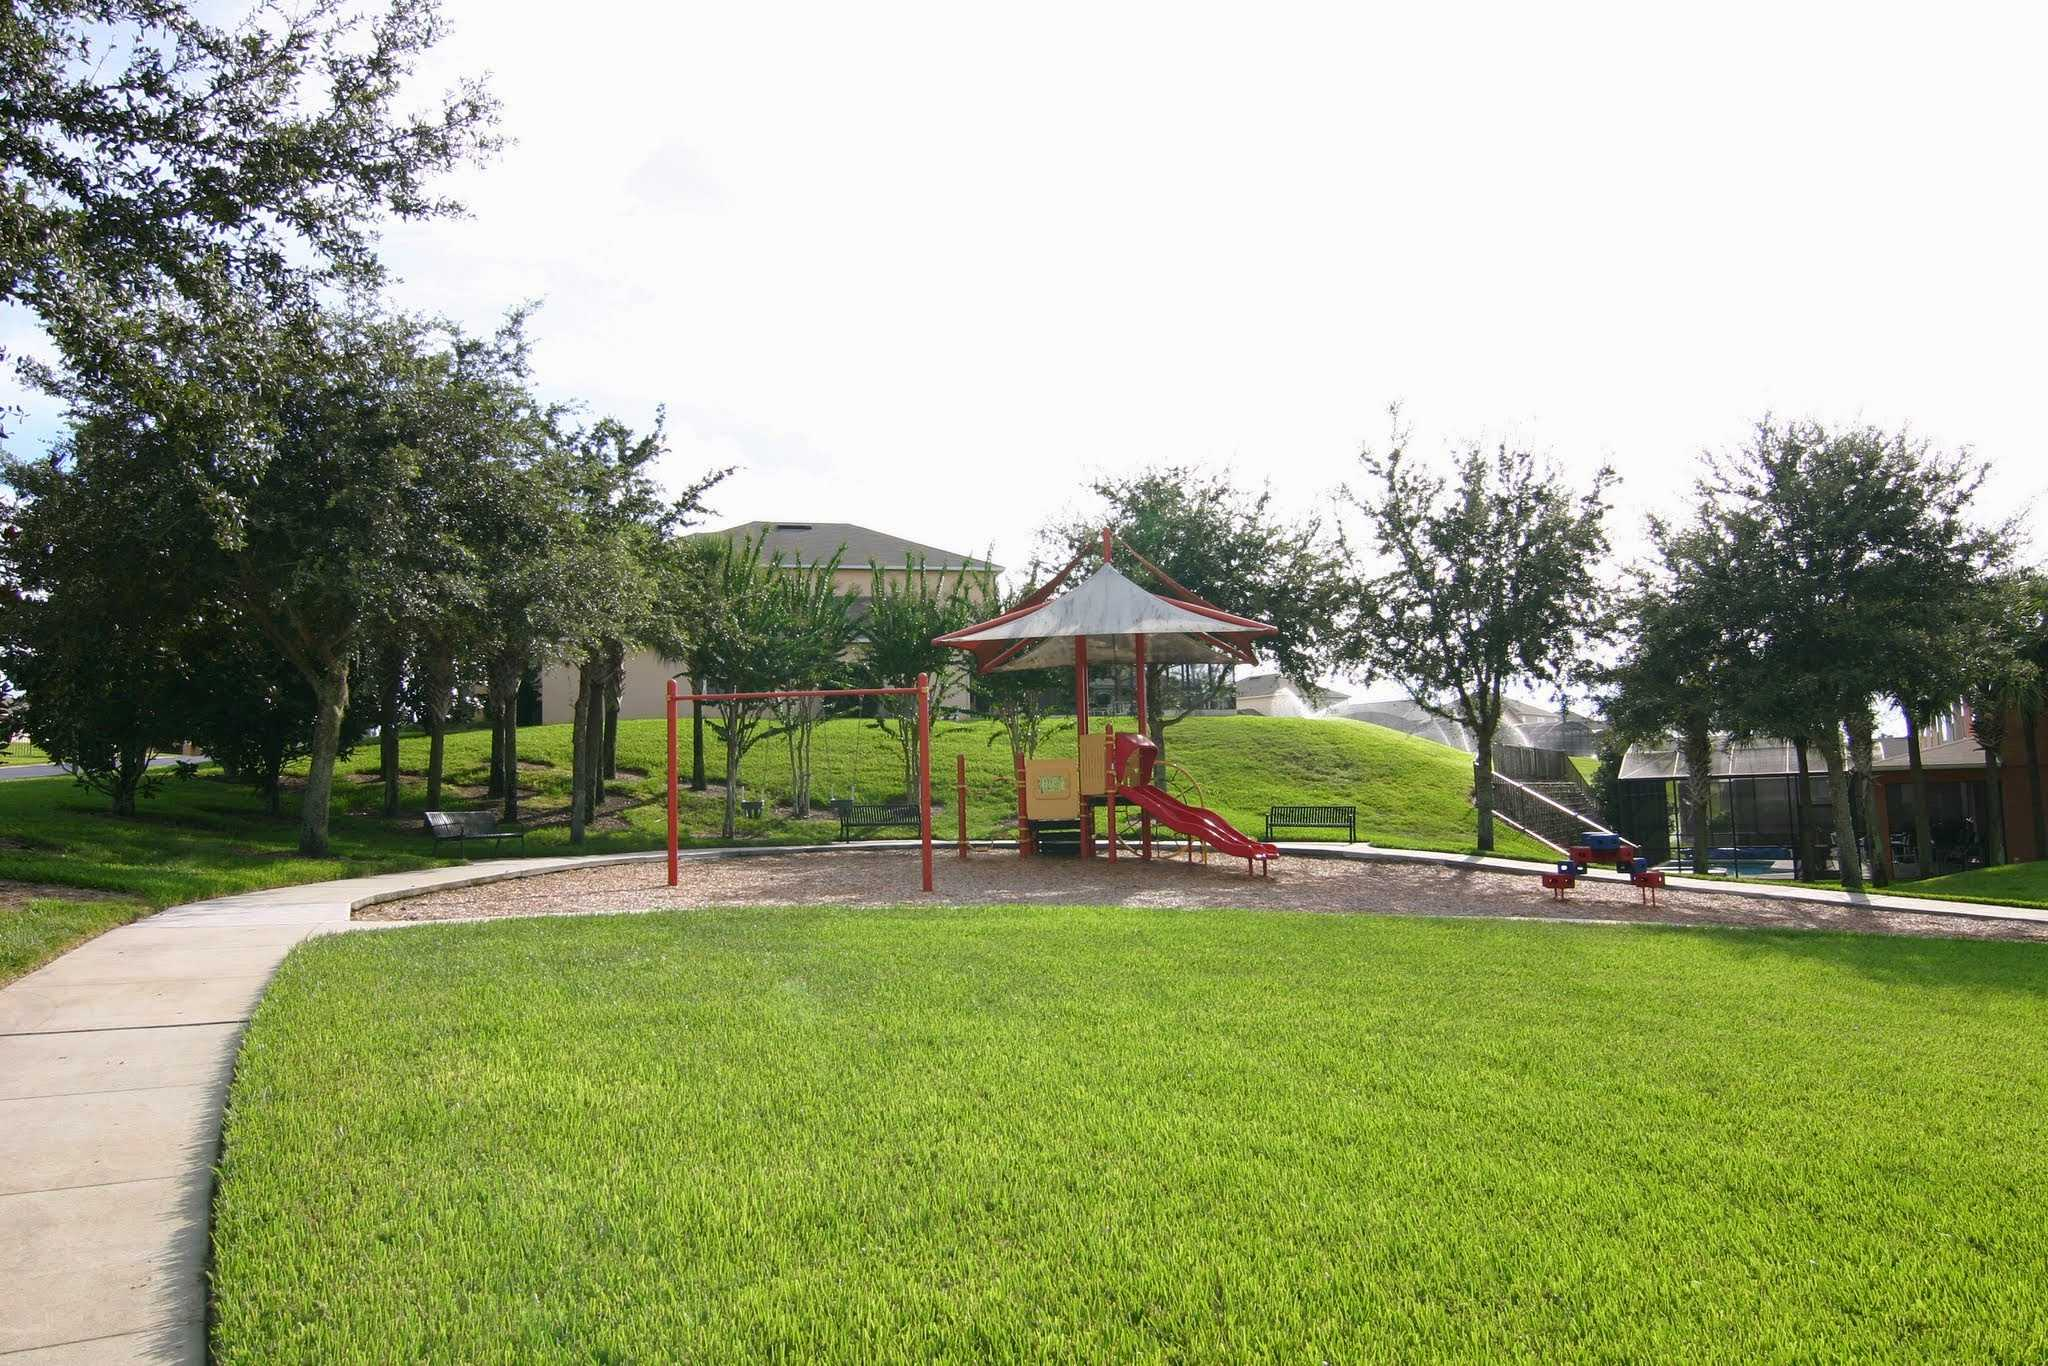 Playground for the little ones